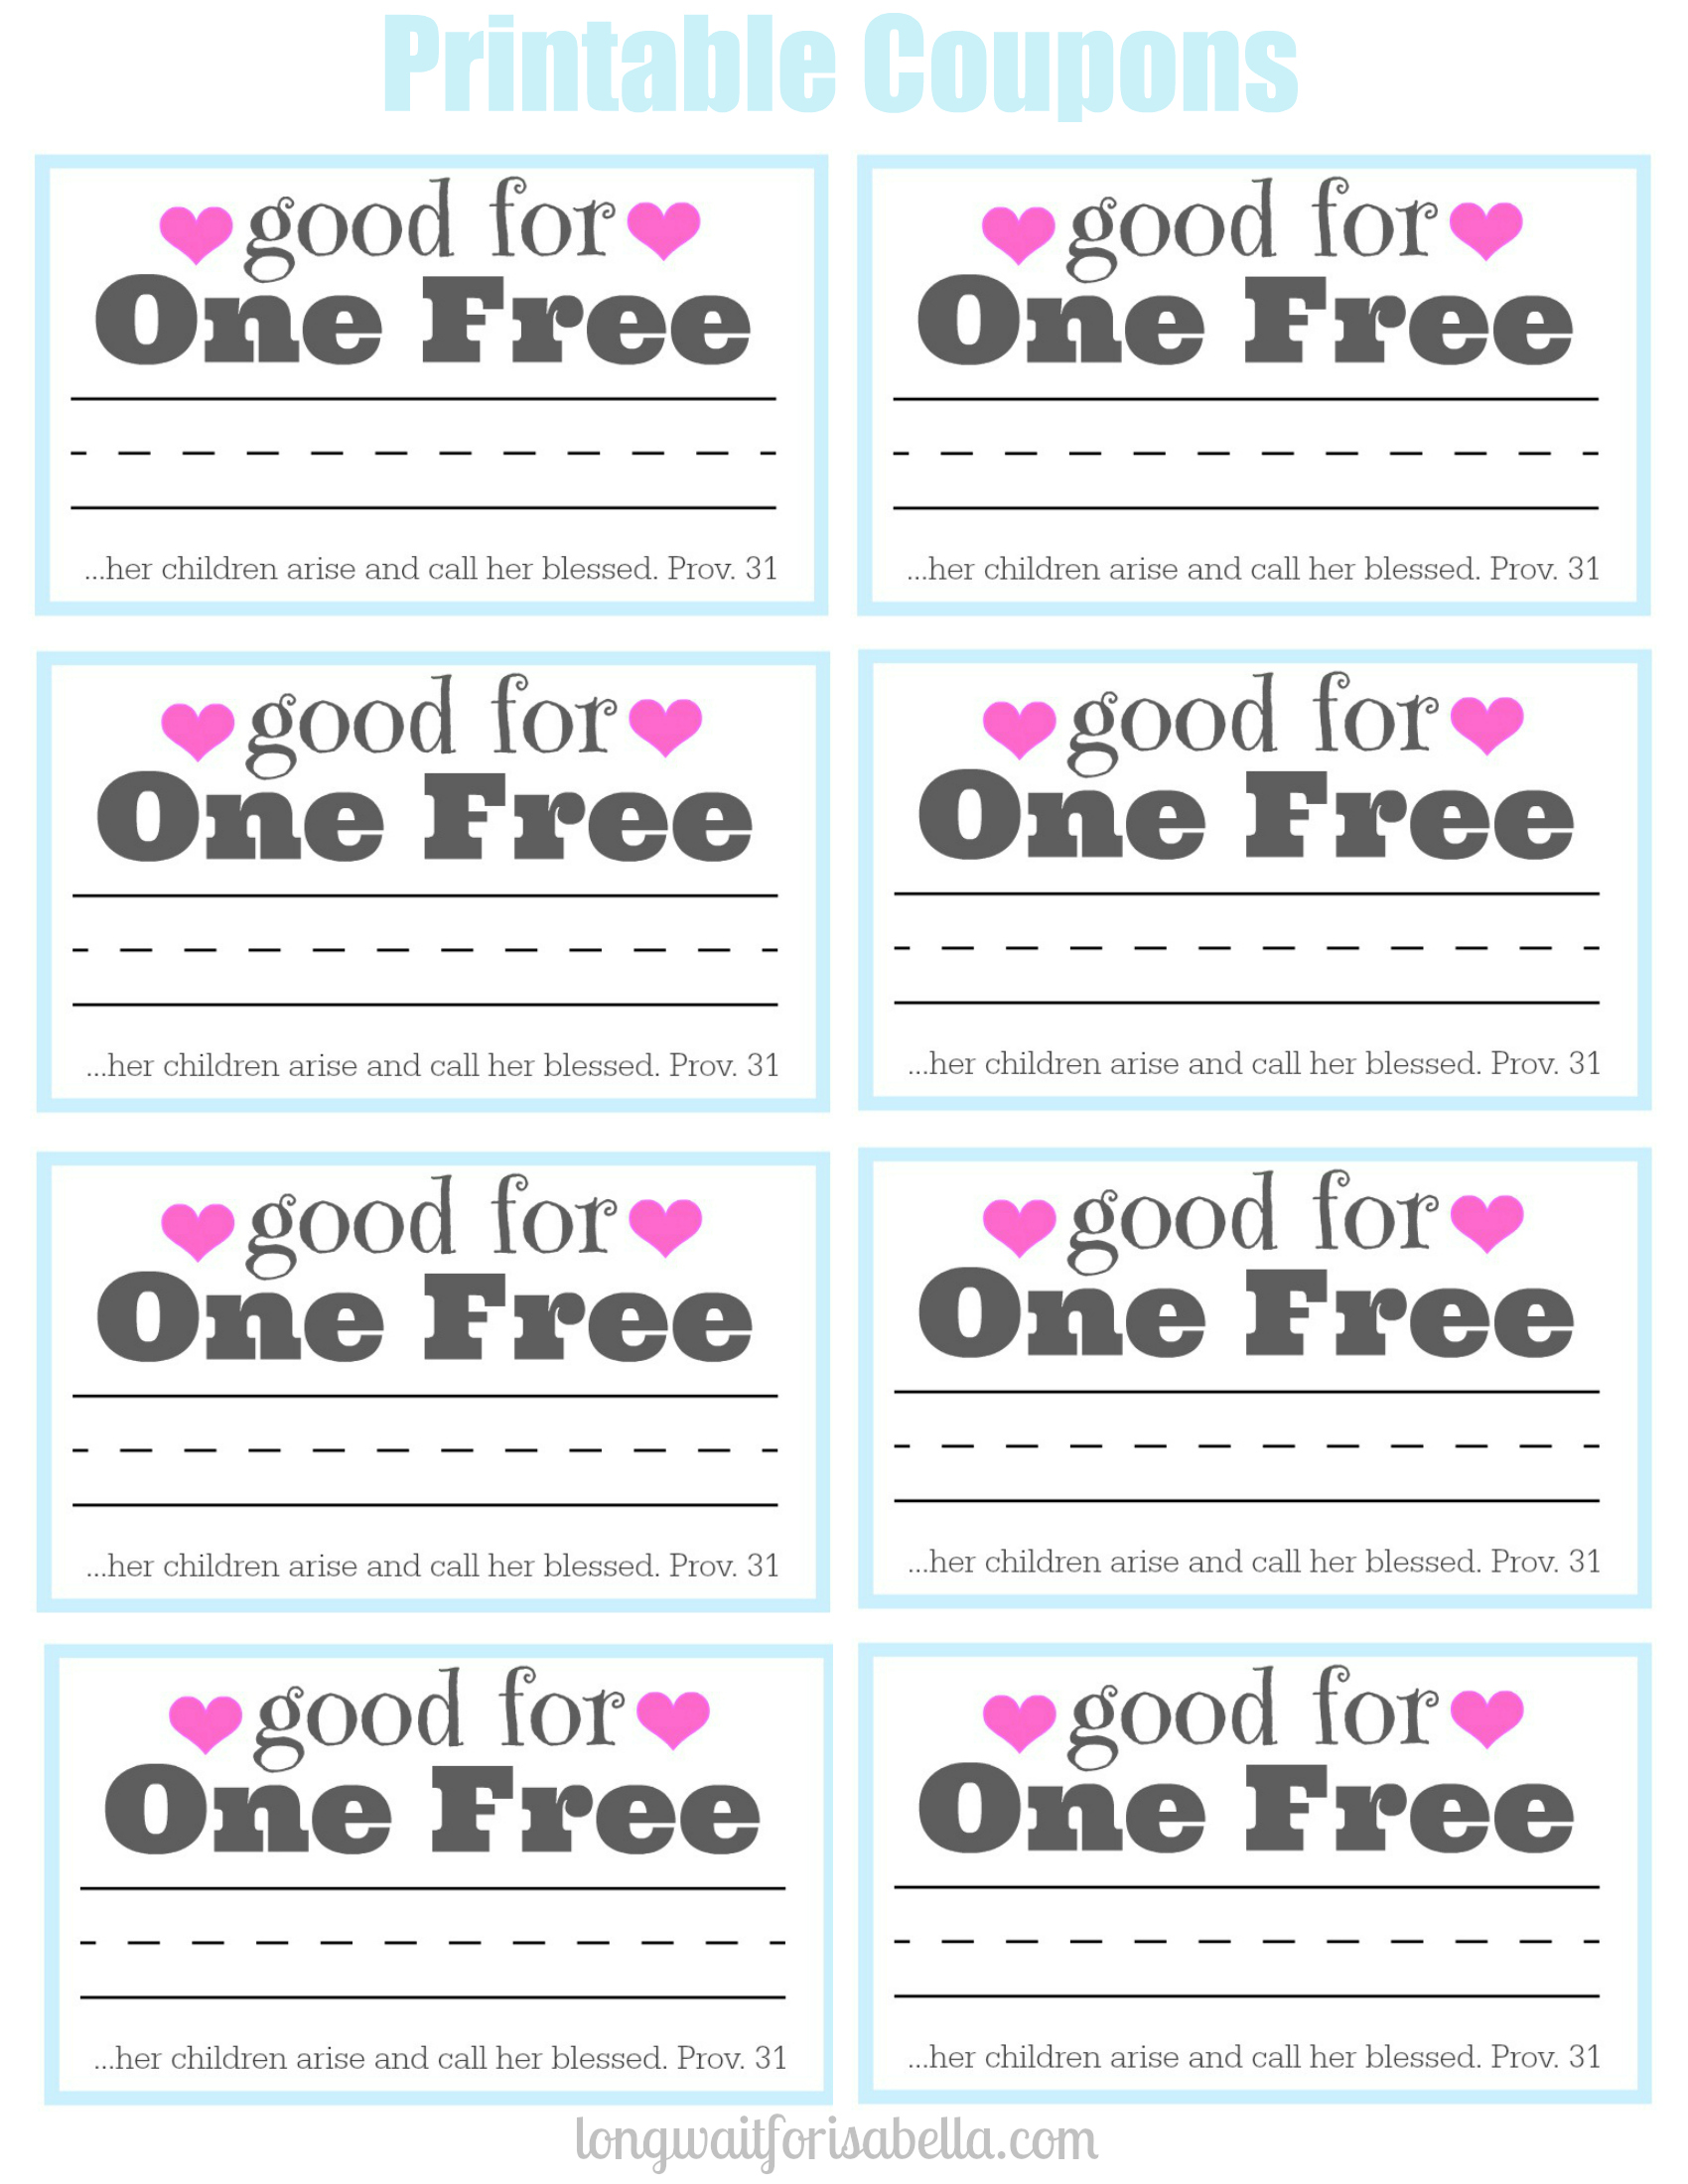 Mothers Day Coupons Printable | Car Interior Design